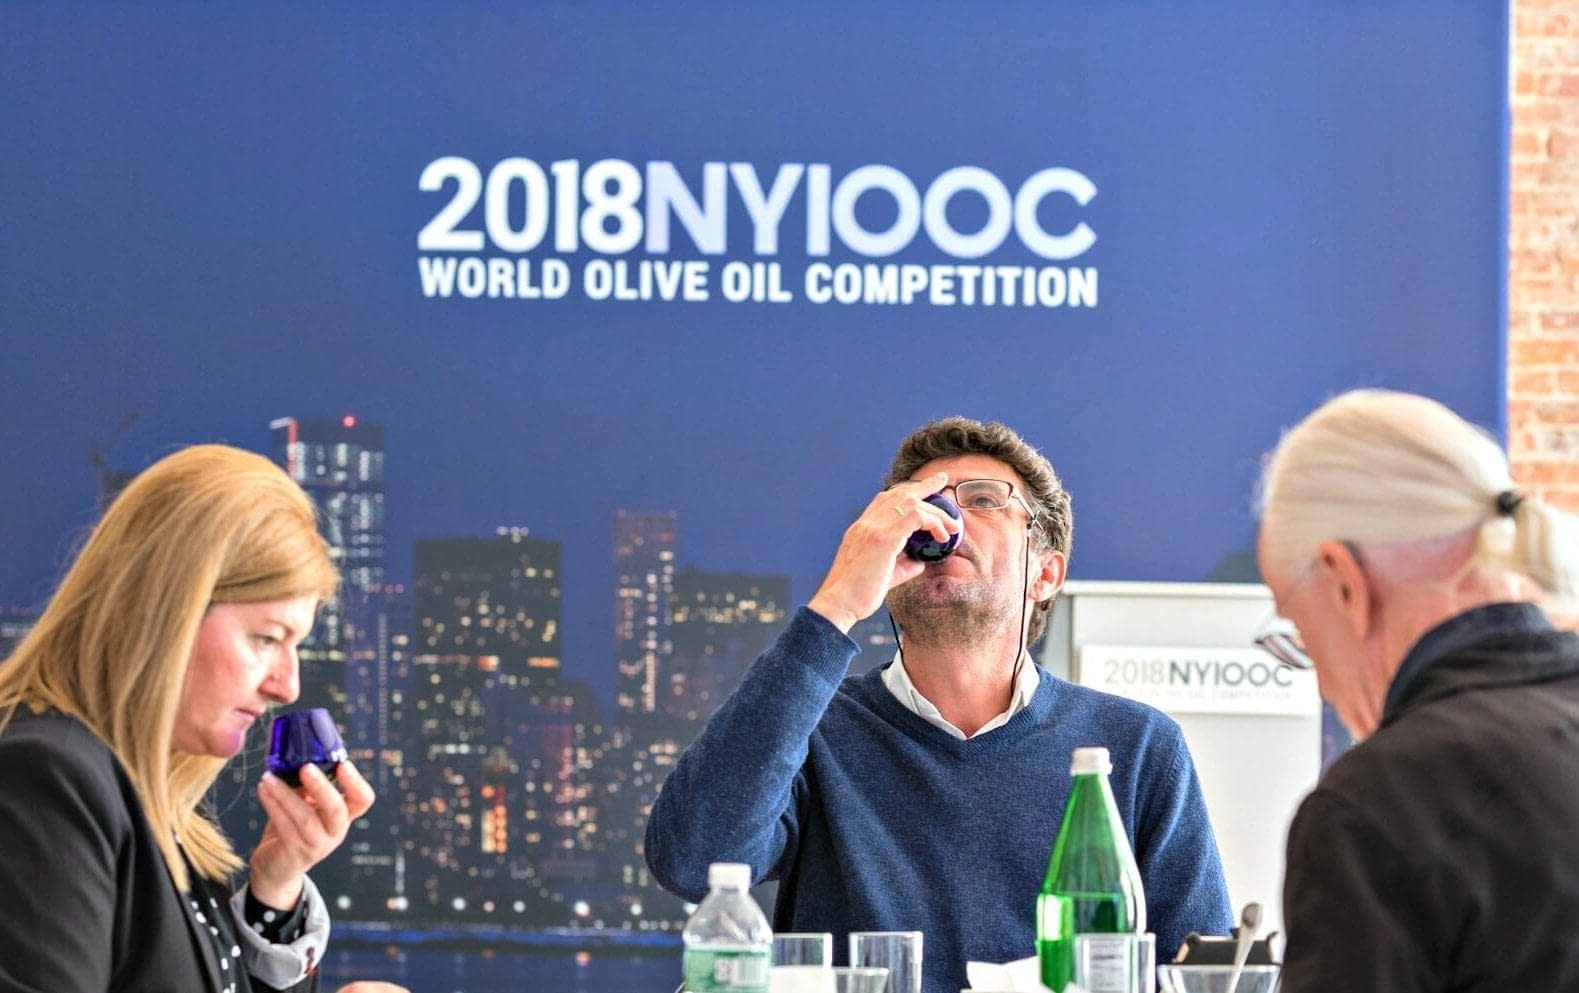 tasting-olive-oil-world-an-introduction-to-olive-oil-tasting-olive-oil-times